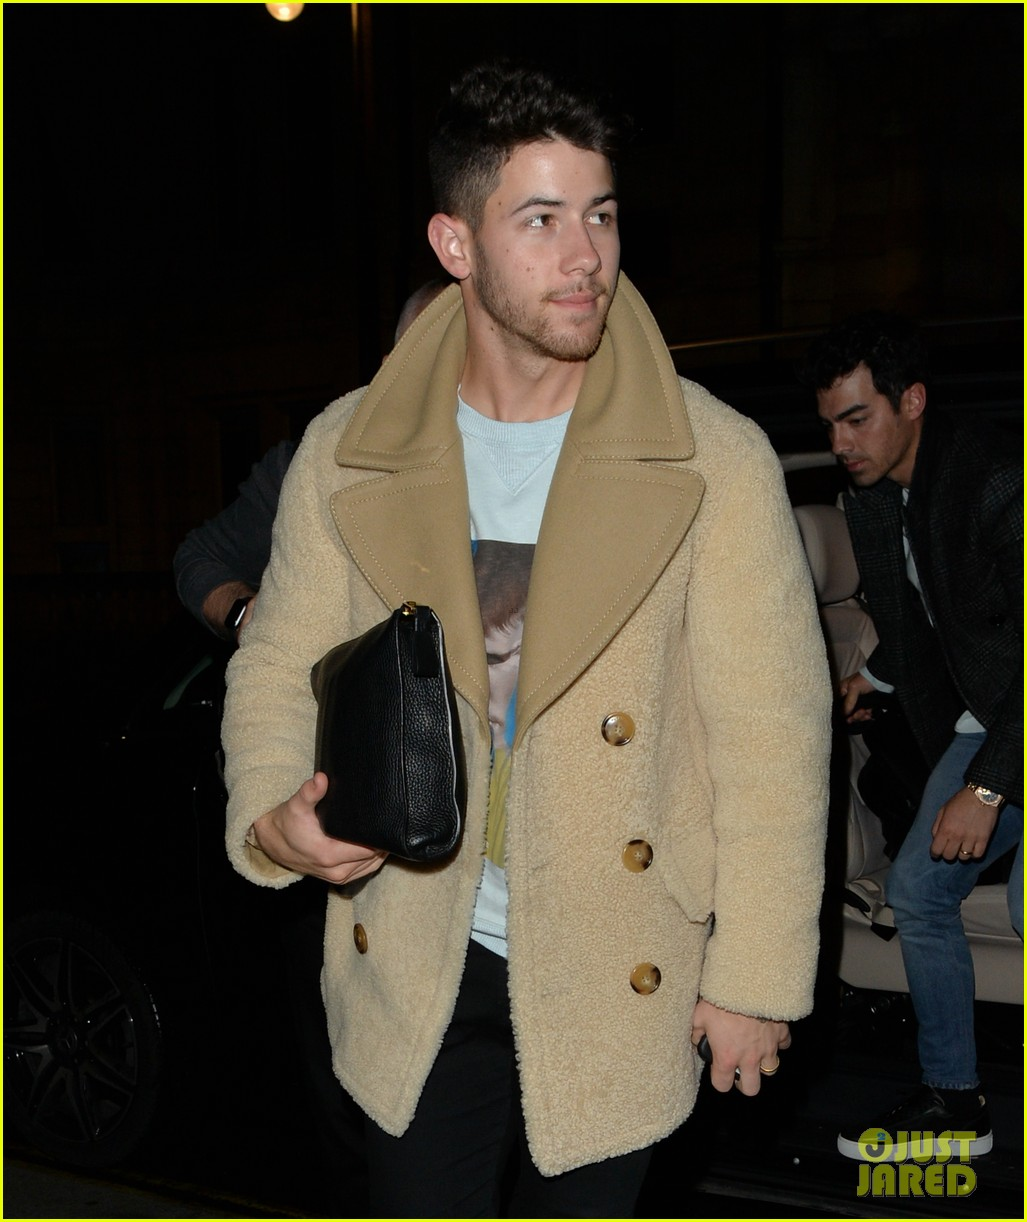 jonas brothers arrive back in london after dublin show 04